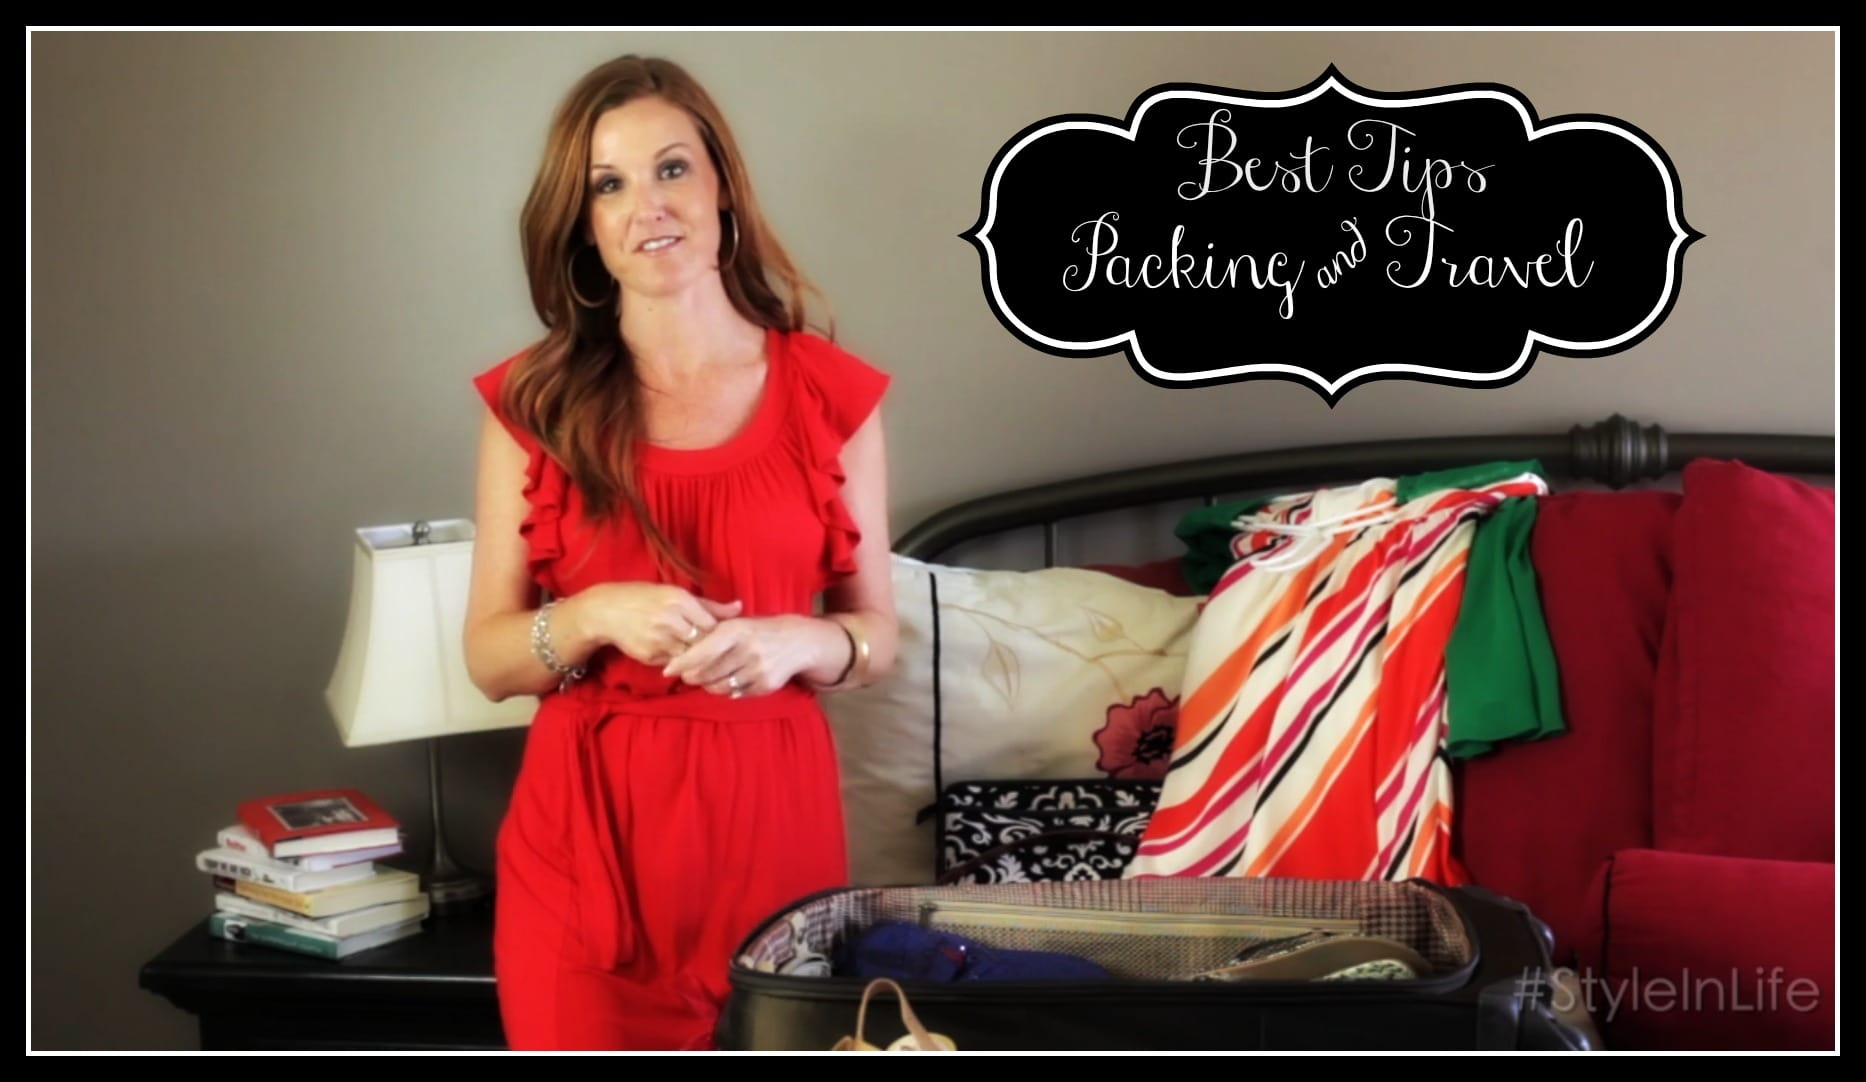 Travel Tips: Packing Made Easy - Keeping Style In Your Life - ExtraordinaryMommy